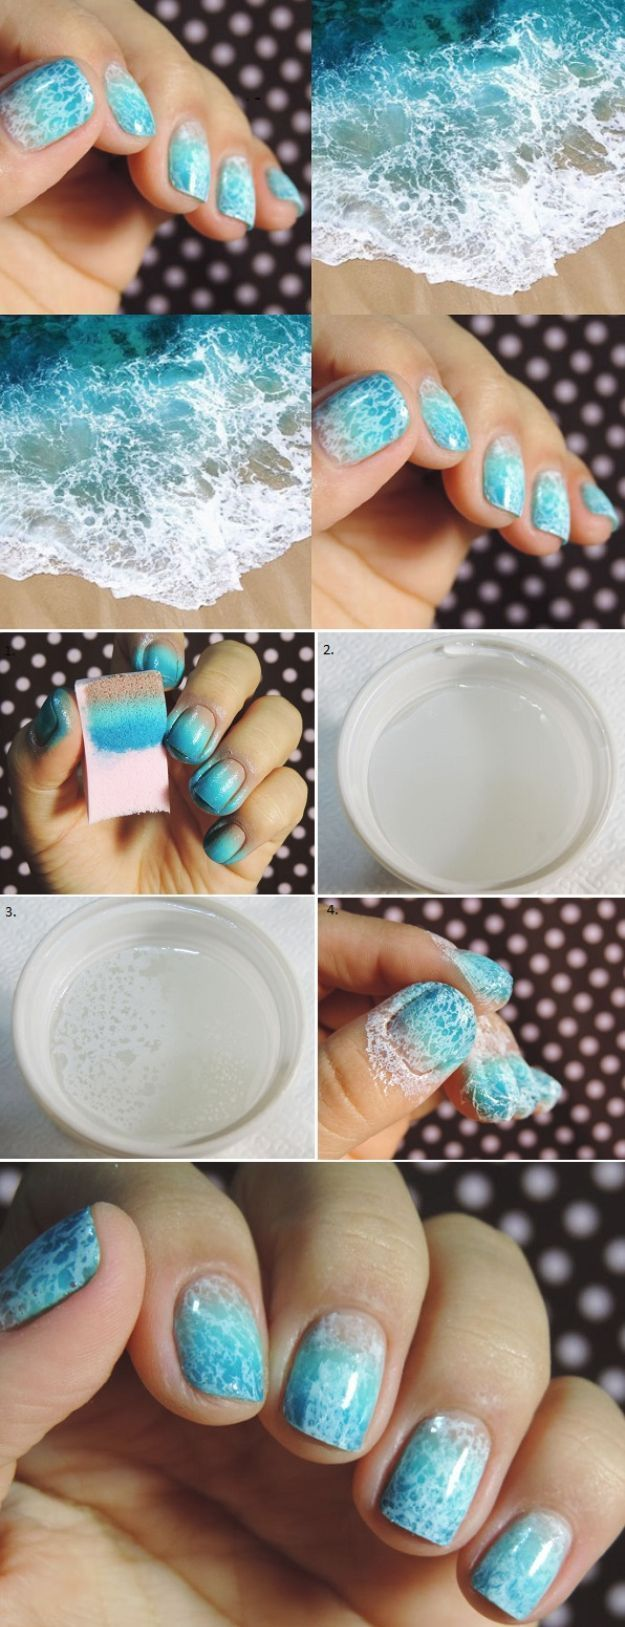 33 Cool Nail Art Ideas – Blue and White Ocean Saran Wrap Manicure Nail Design Tu…